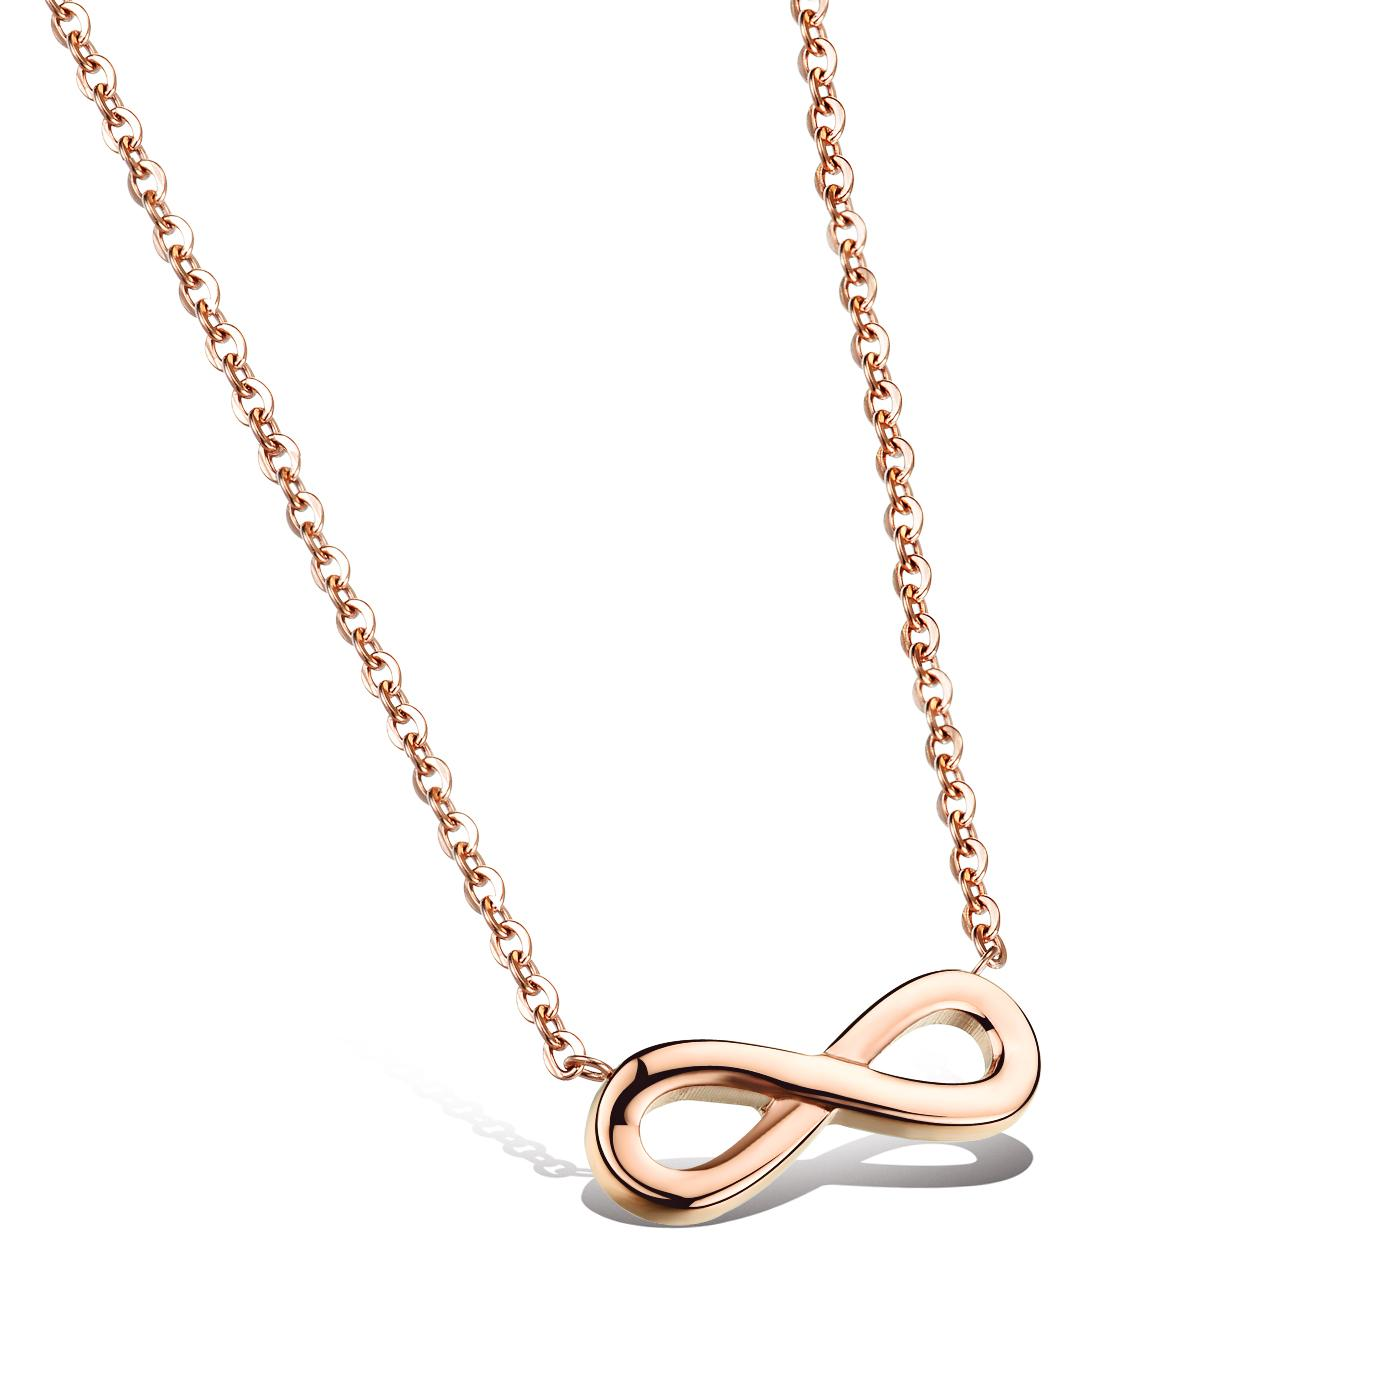 infinity gold necklace. wholesale fashion simple rose gold infinity symbol pendant necklaces women chain charms necklace eternity pendants mens